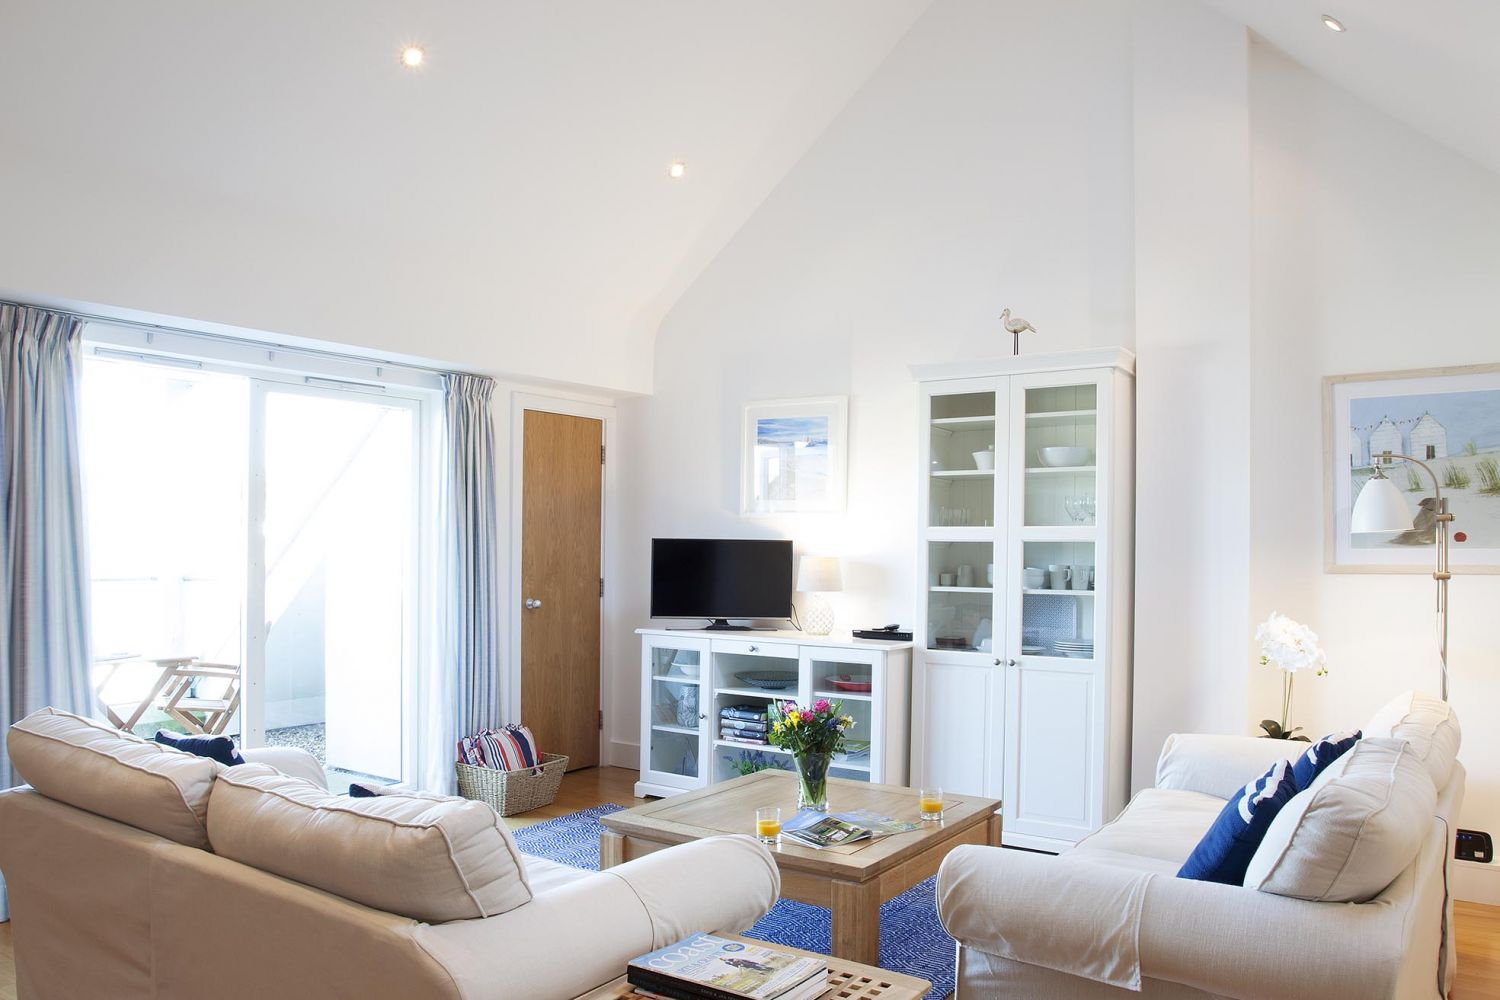 Crow's Nest - Porthleven holiday Cottages